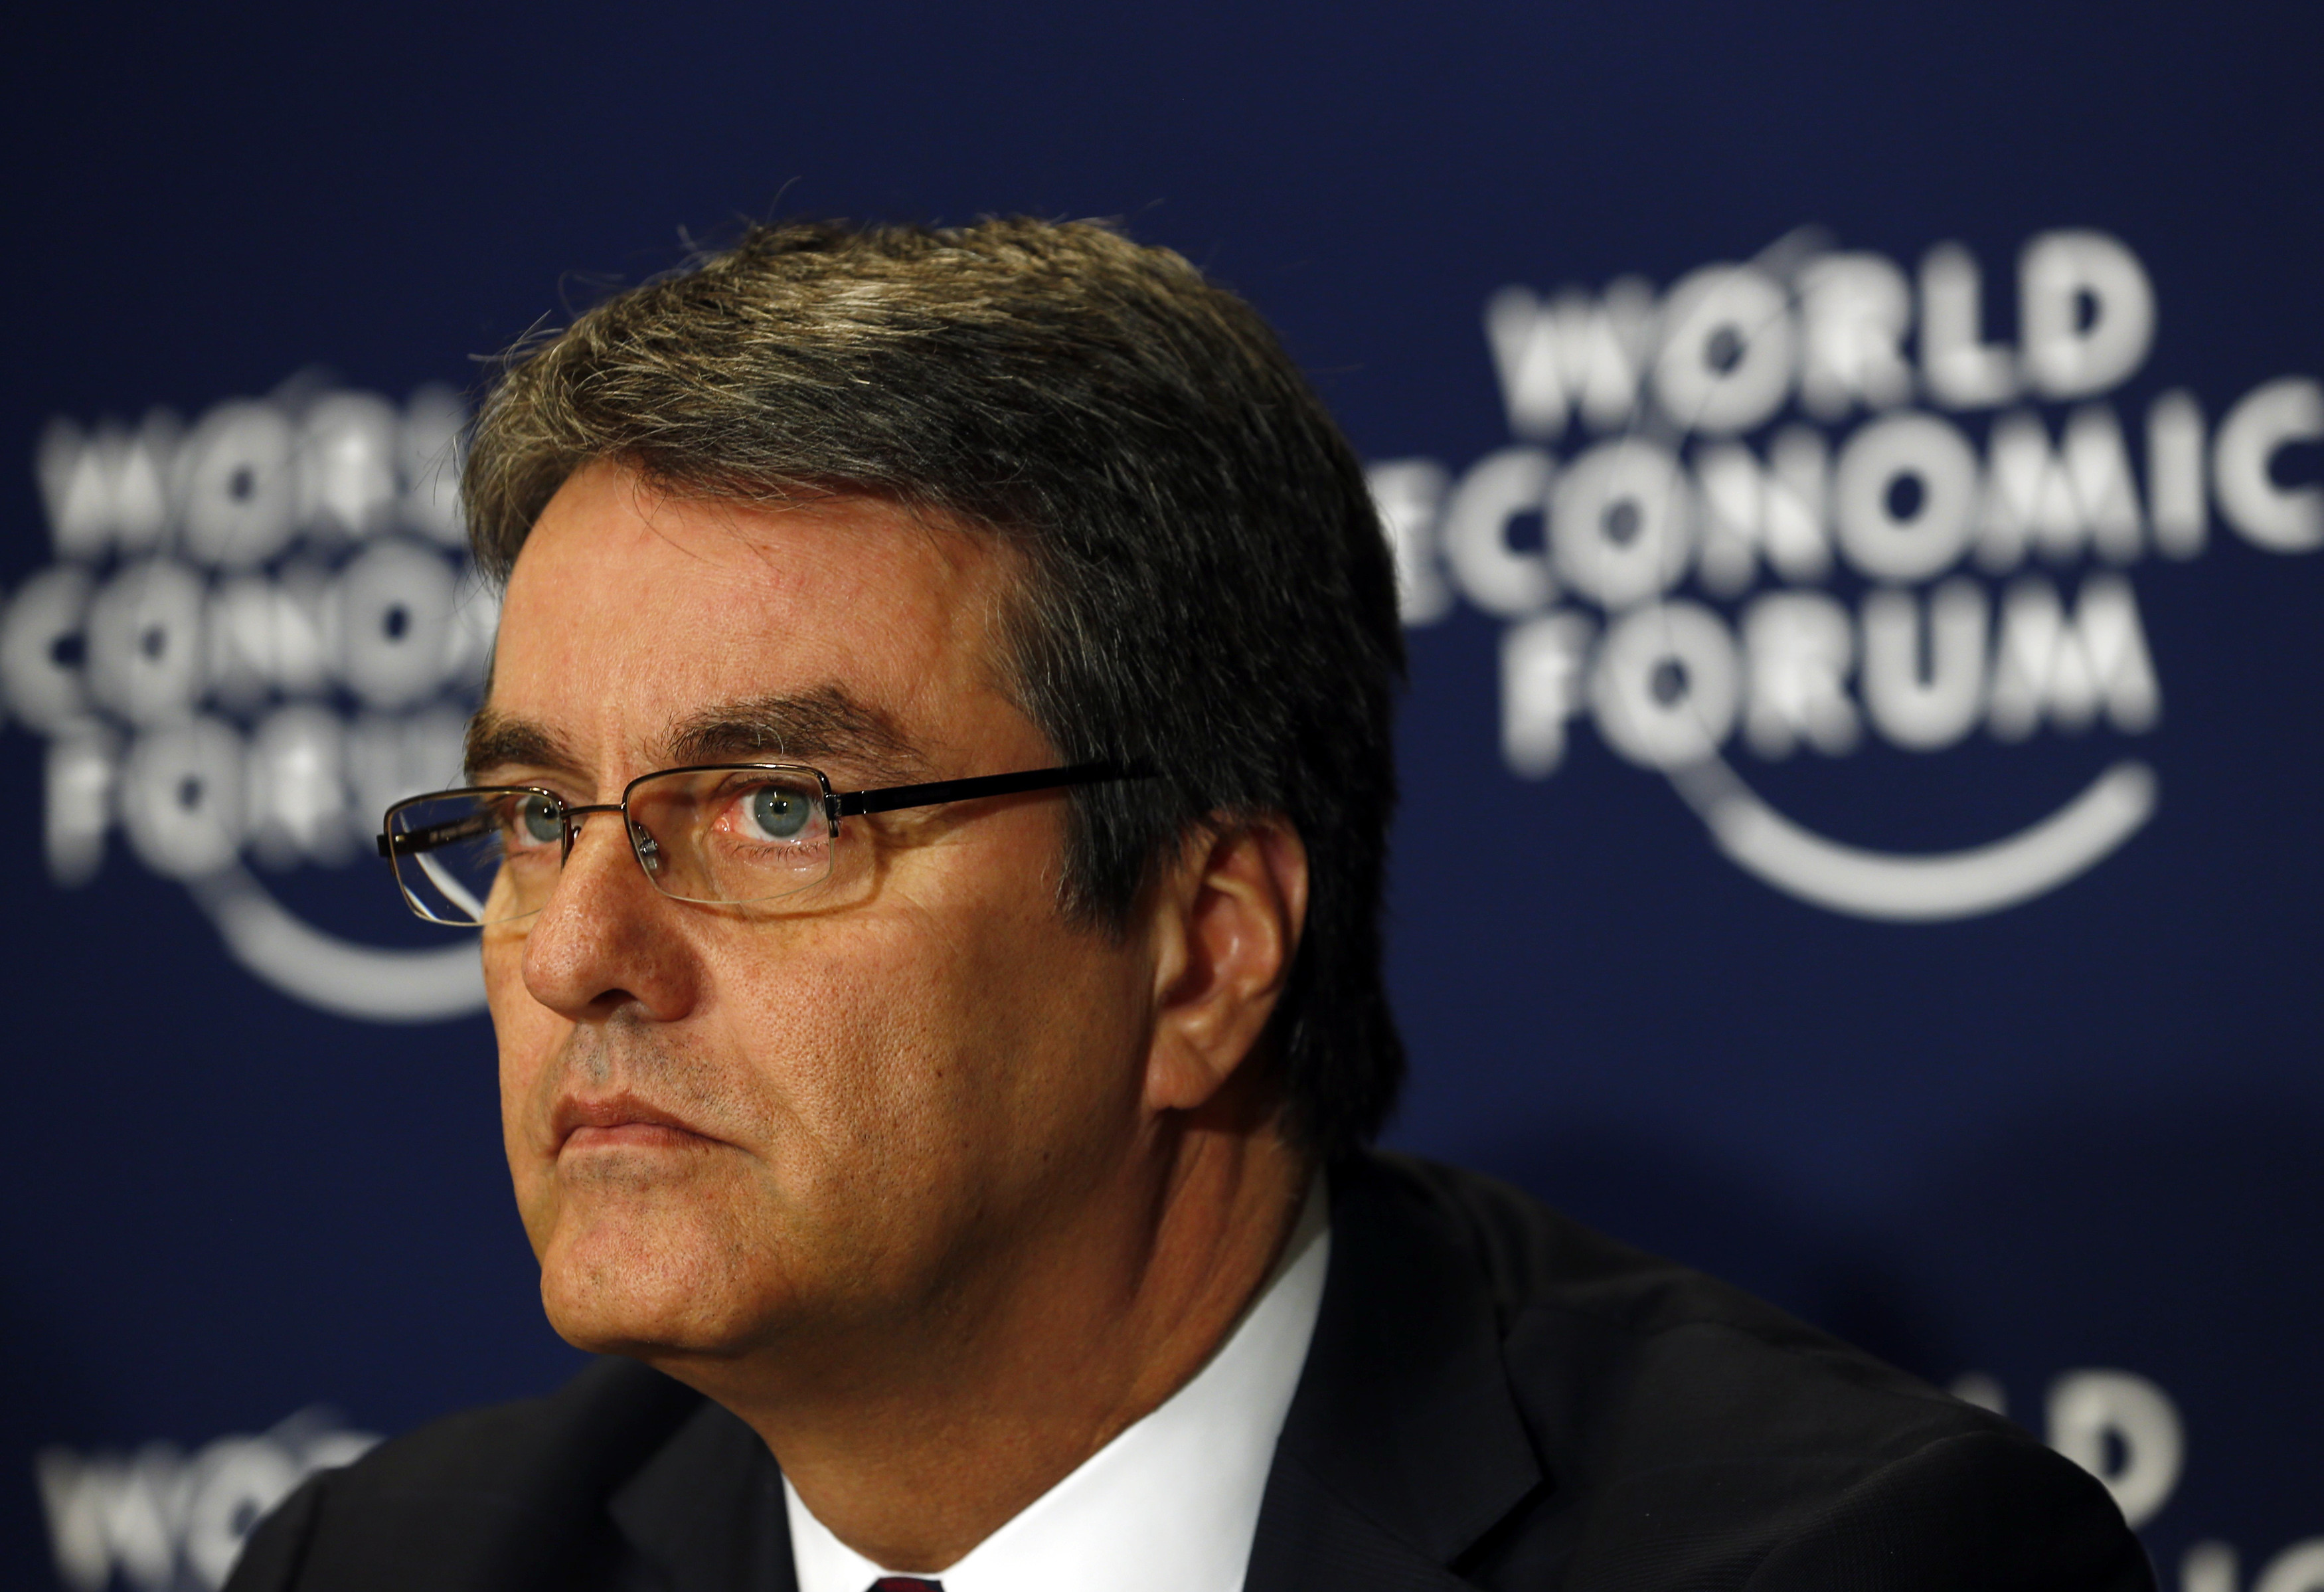 World Trade Organization (WTO) Director-General Roberto Azevedo attends a session at the World Economic Forum (WEF) in Davos January 25, 2014. REUTERS/Denis Balibouse (SWITZERLAND  - Tags: POLITICS BUSINESS)   - RTX17TXA